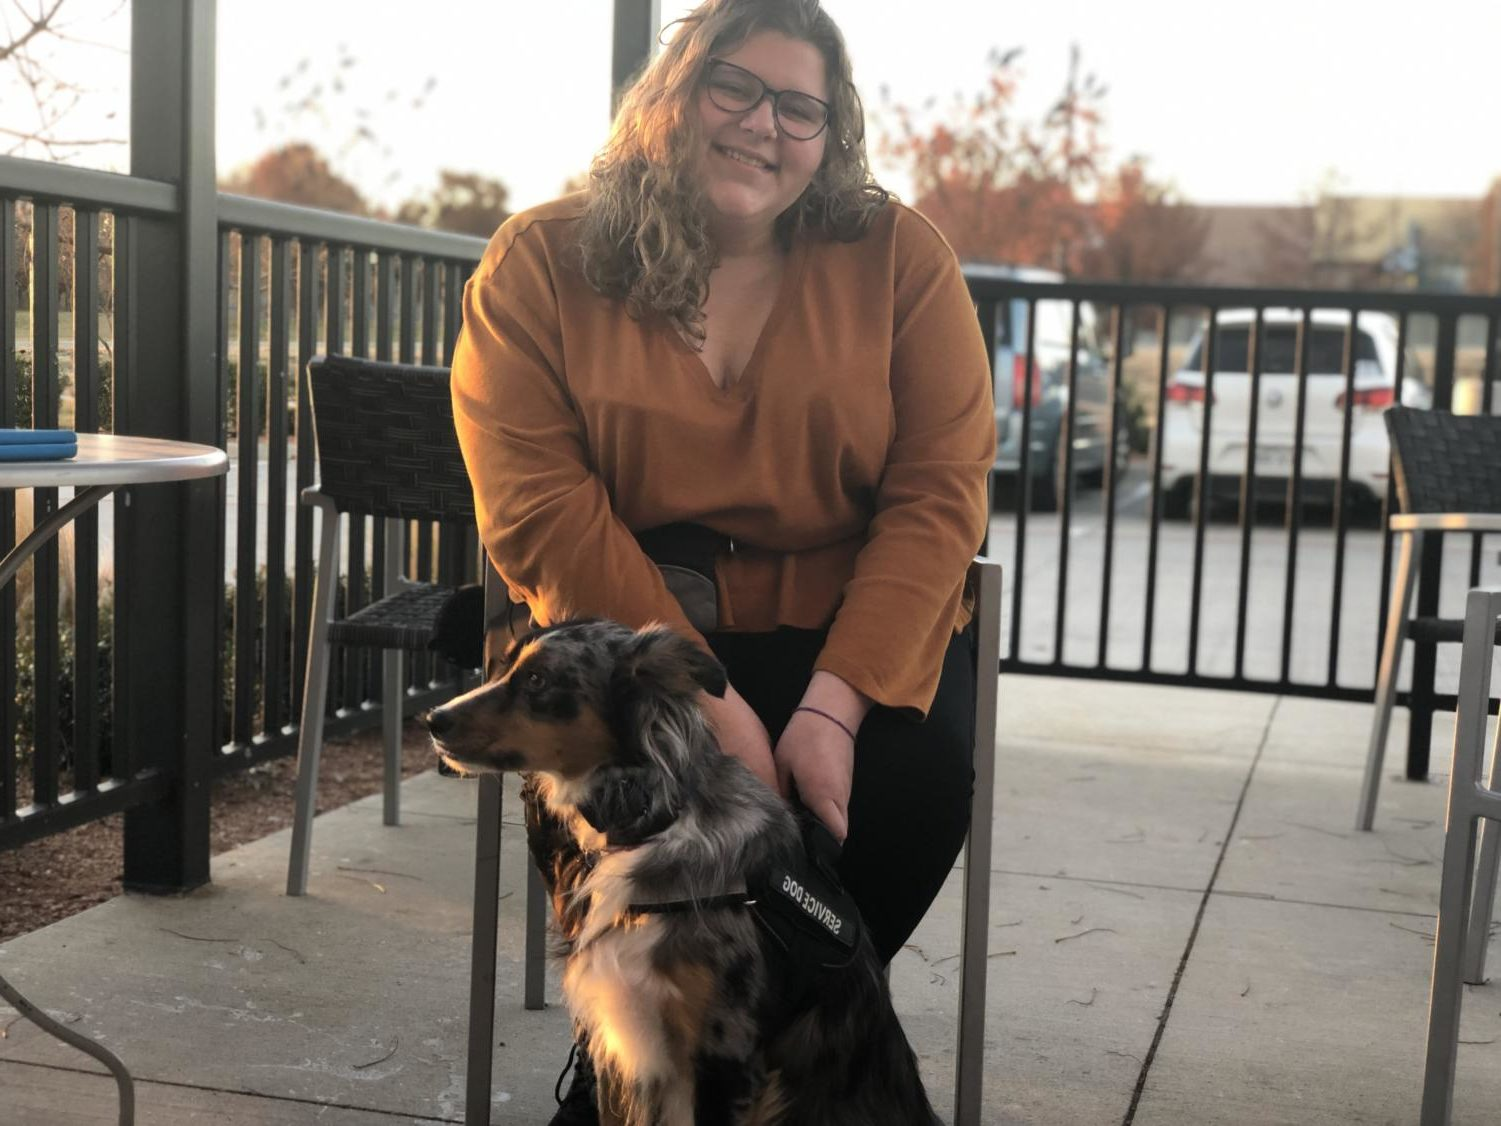 Student Jennifer Sieira sits with her service dog, Hero.  After a battle to bring him to campus, she is able to have him ready to assist her at all times.